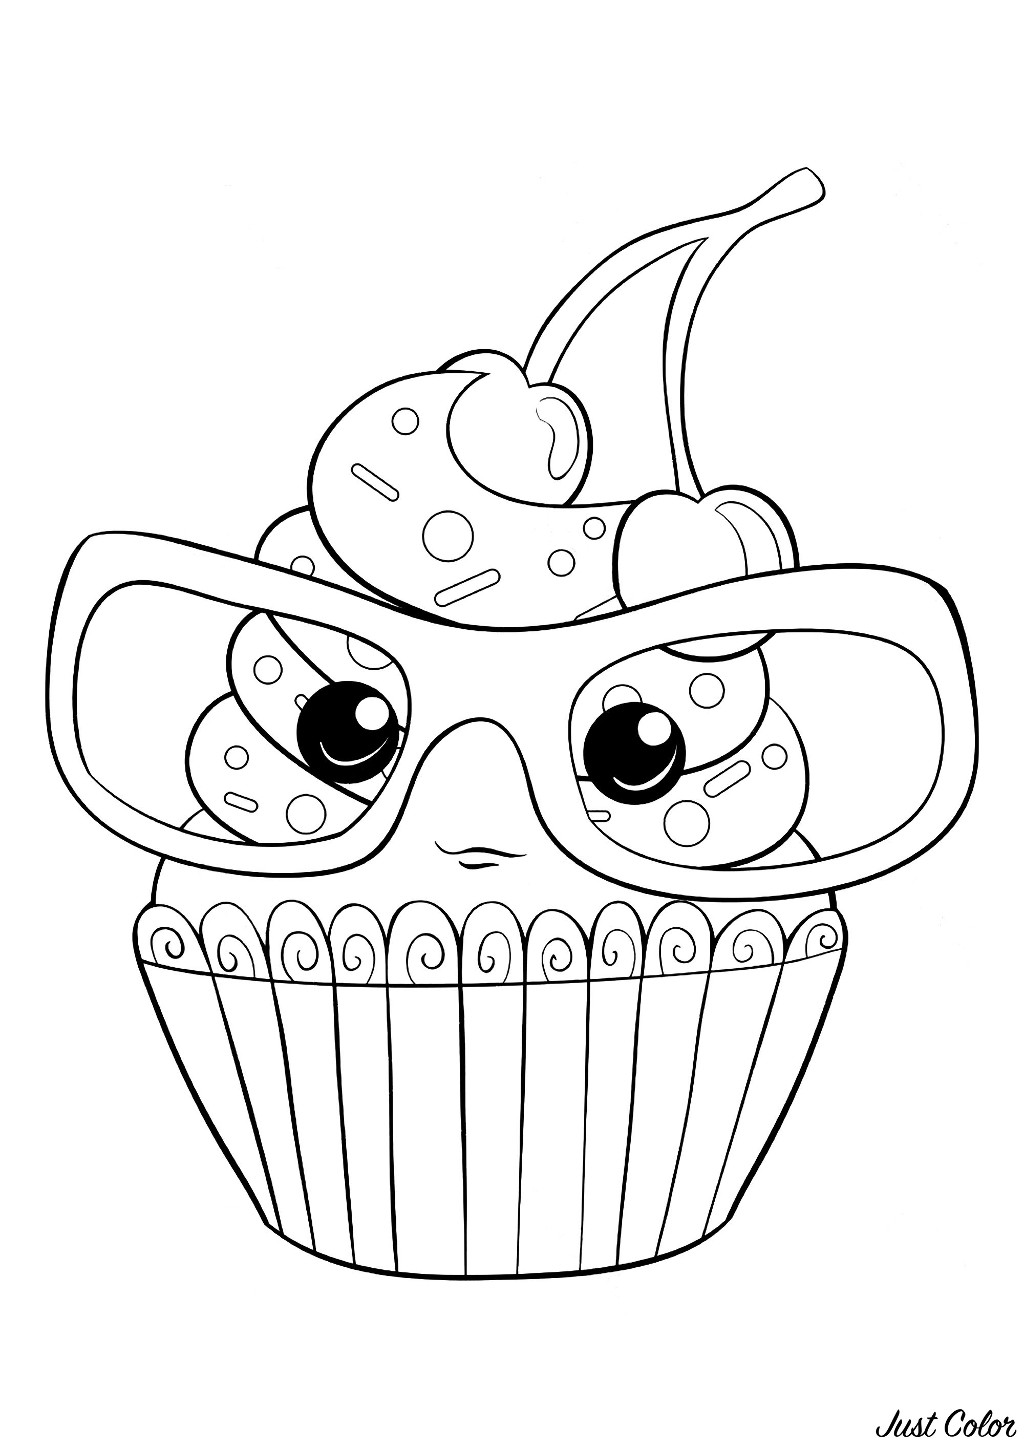 Happy Birthday Cake Clipart - Colouring Pages Of Cake - Png ... | 1448x1024